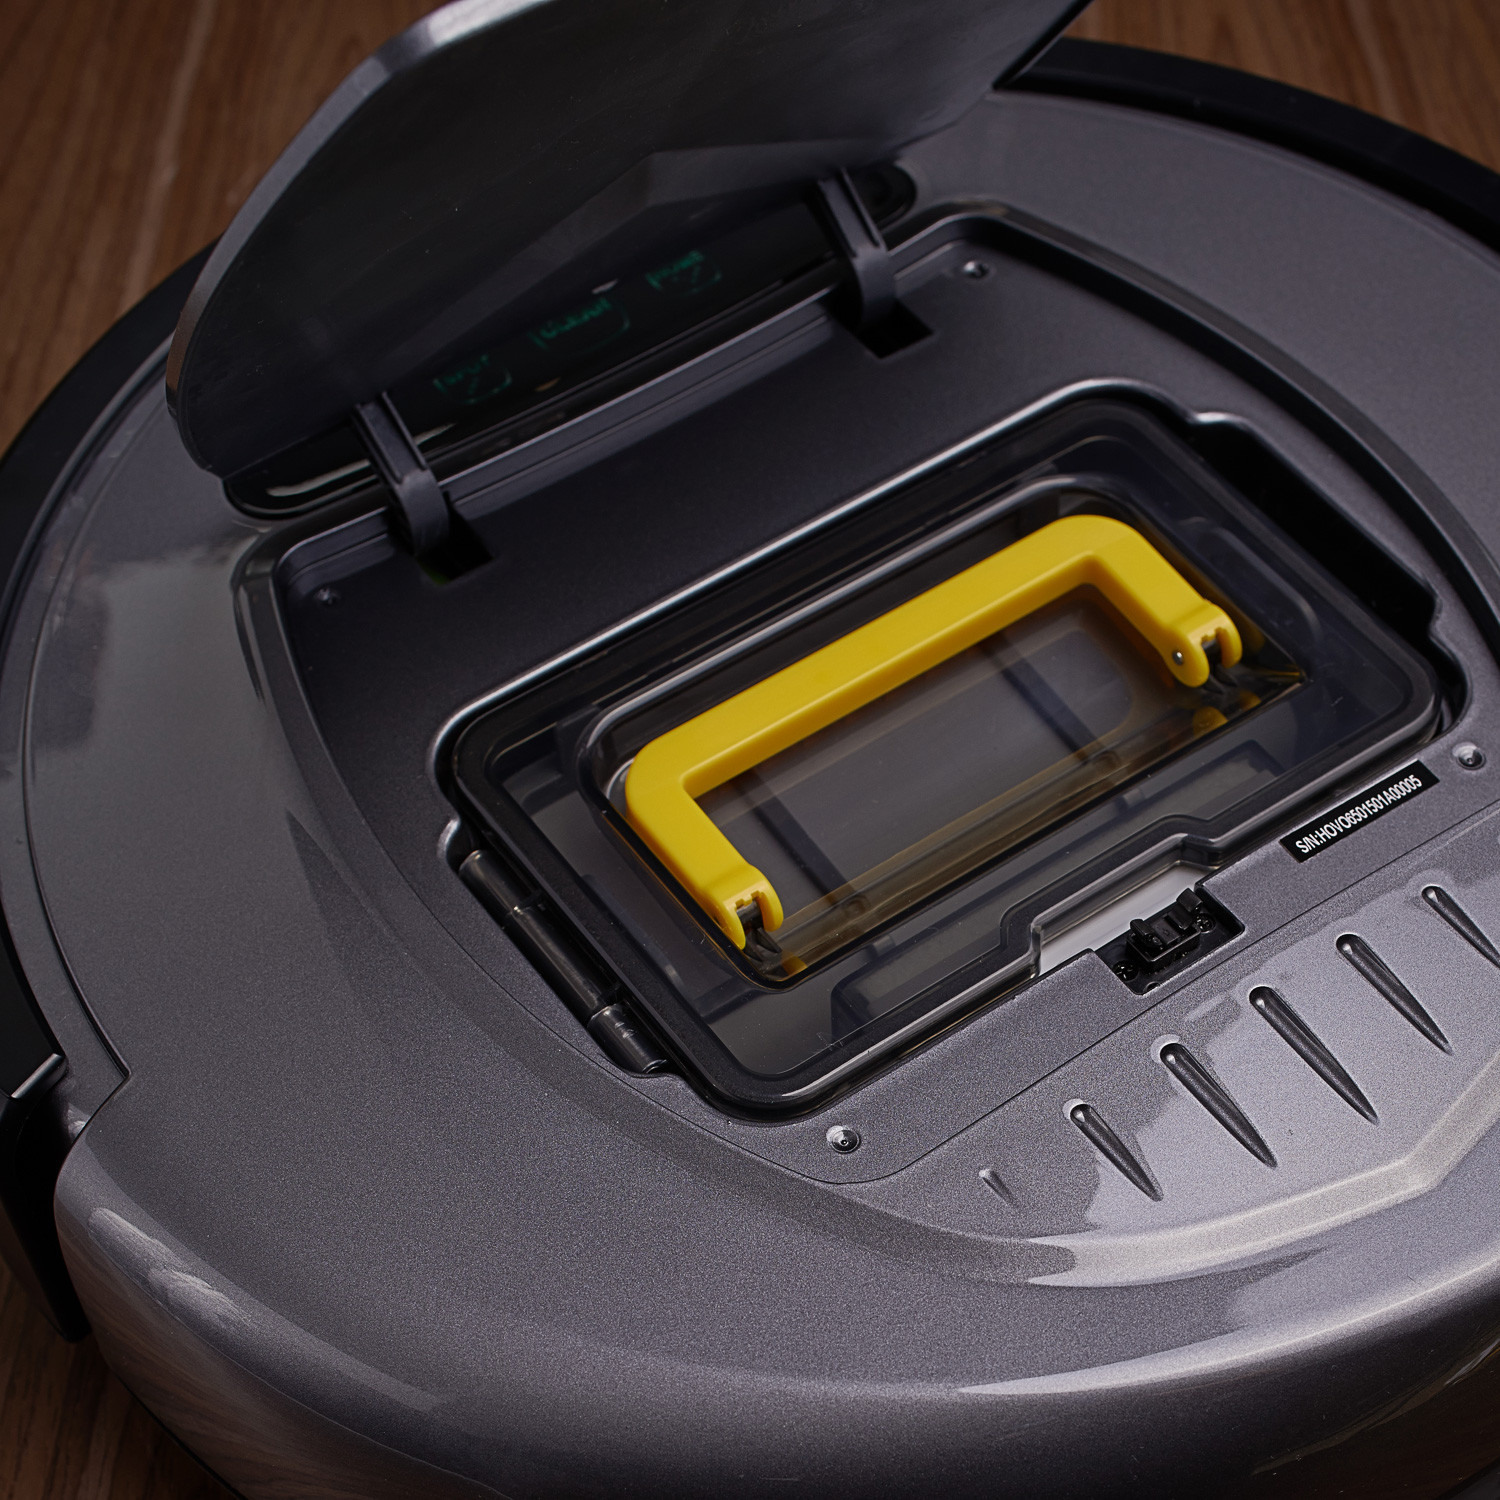 Hovo 650 Robot Vacuum Cleaner Grey Infinuvo Touch